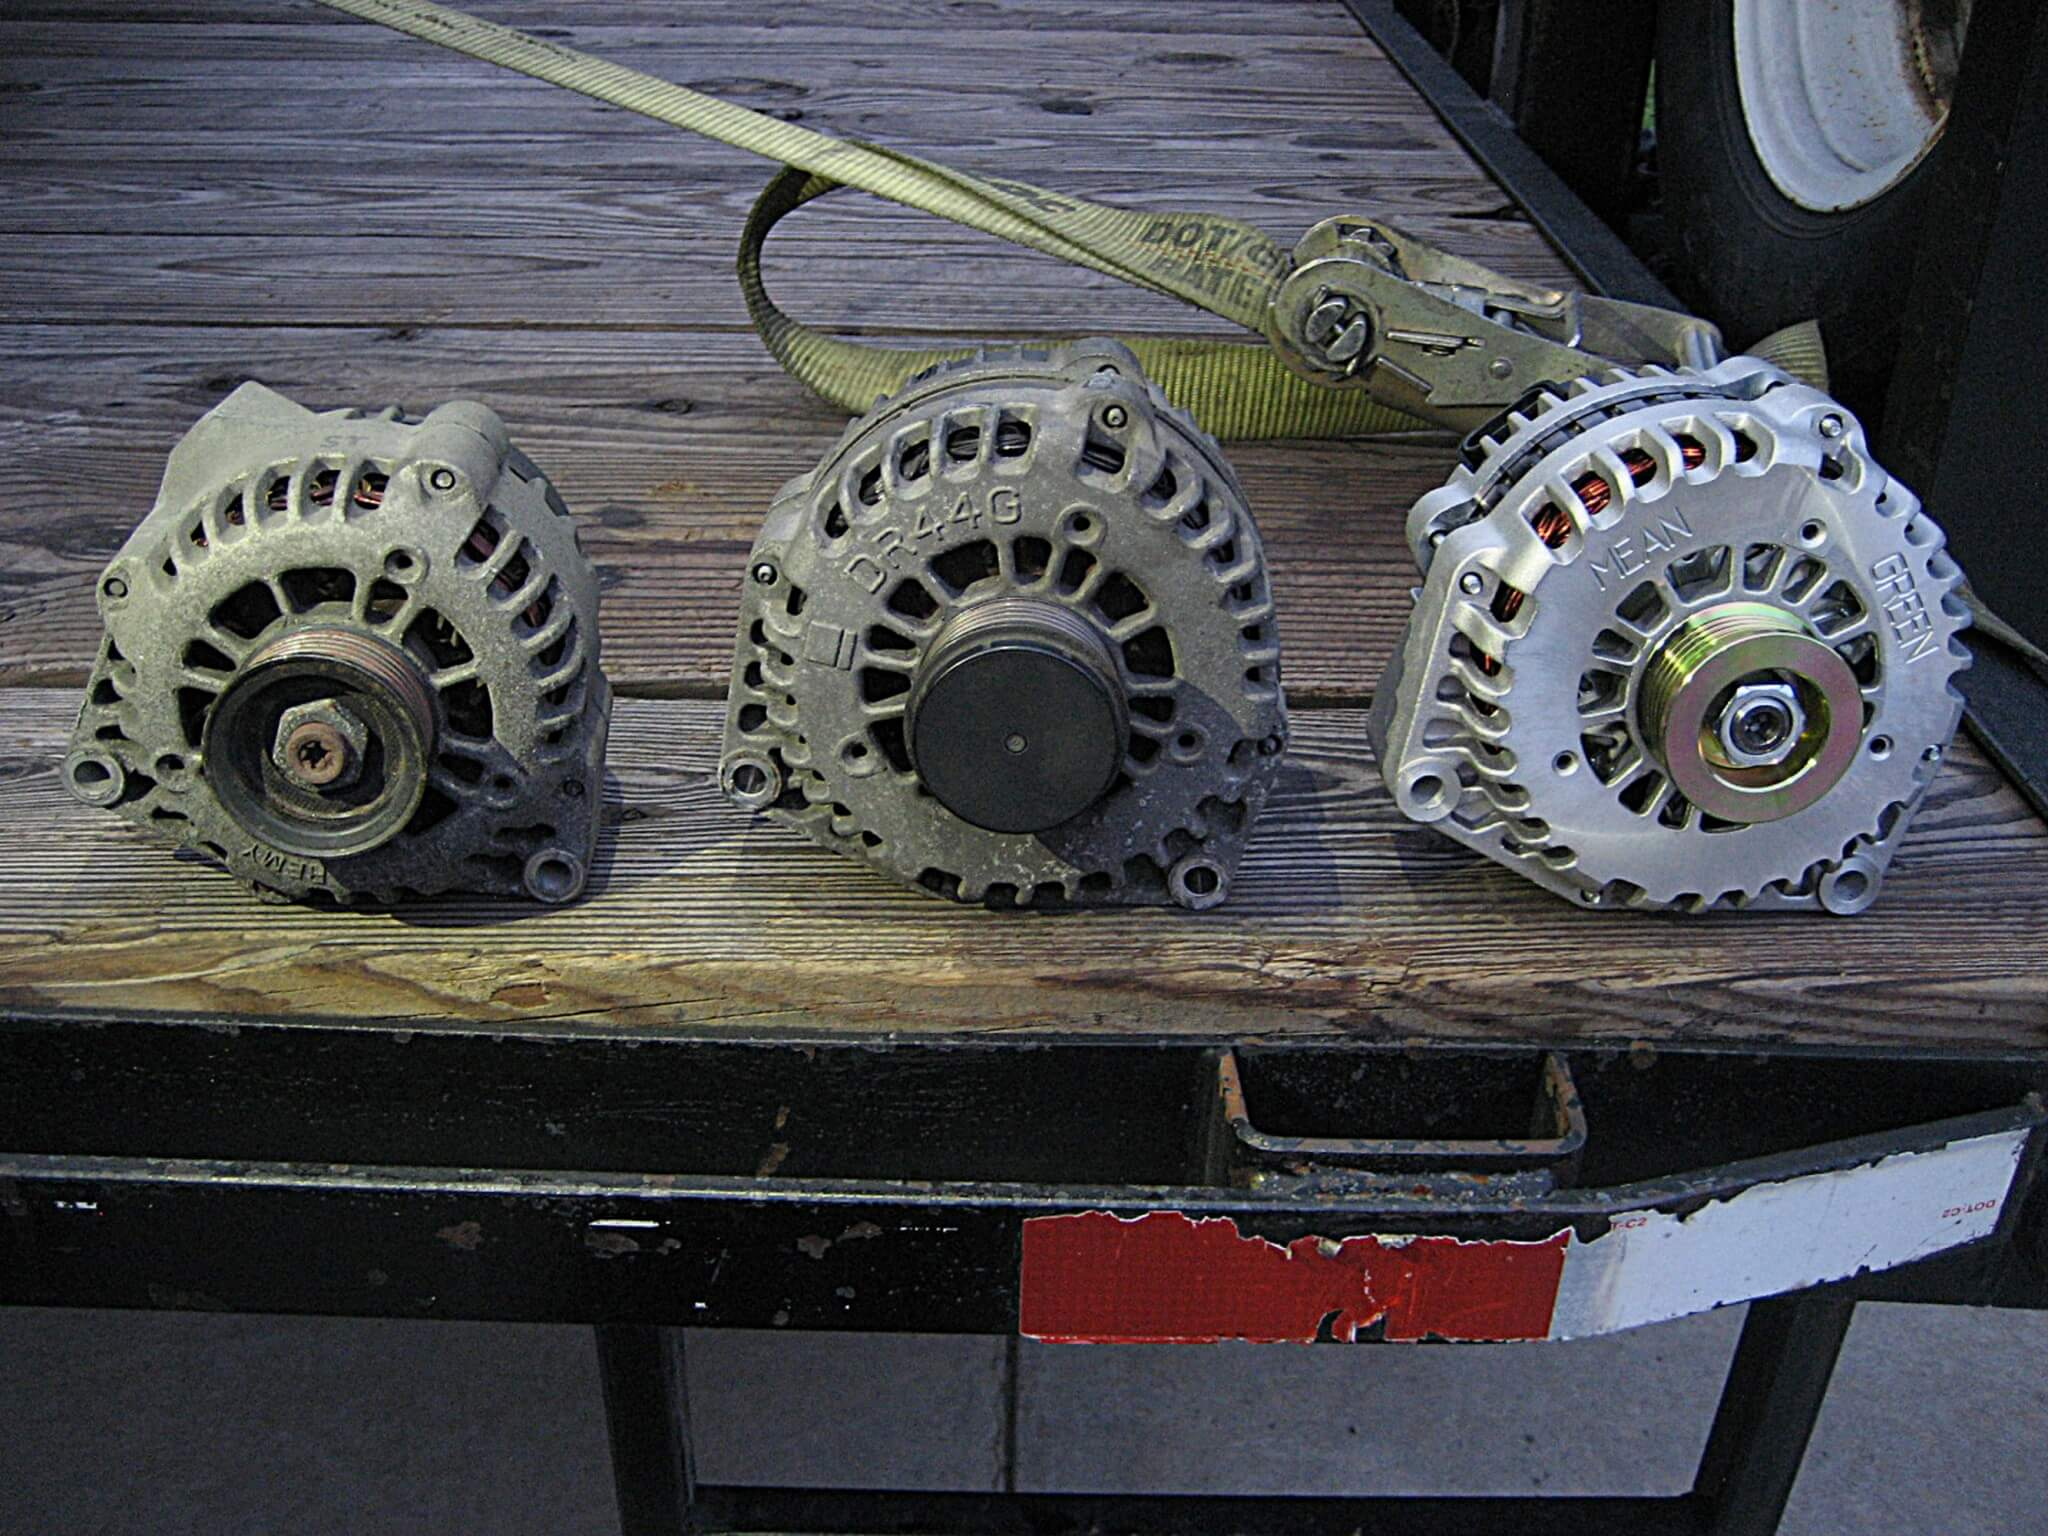 Here you can see the stock OEM alternator on the left. In the